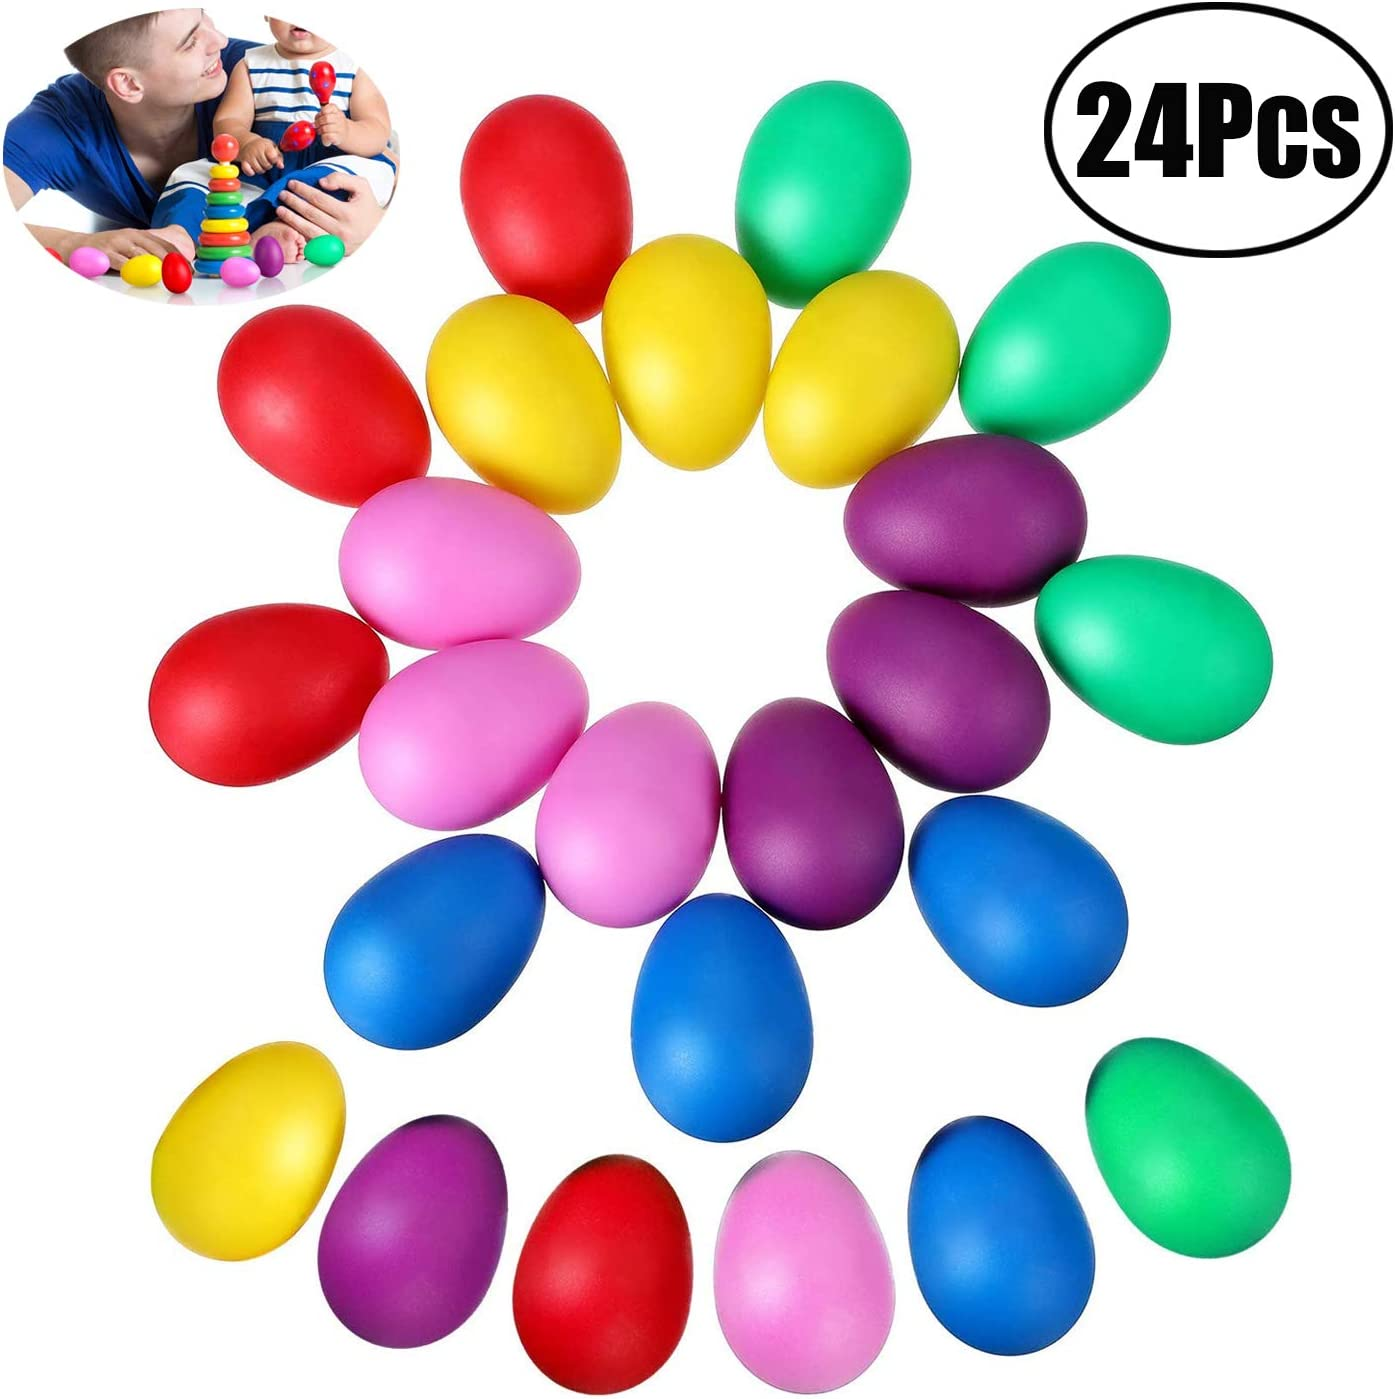 8 Colors Plastic Percussion Musical Egg cococity 16 Pieces Egg Shaker Set Colorful Maracas Eggs Plastic Egg for Easter Party Bag Fillers Party Favors Musical Toys